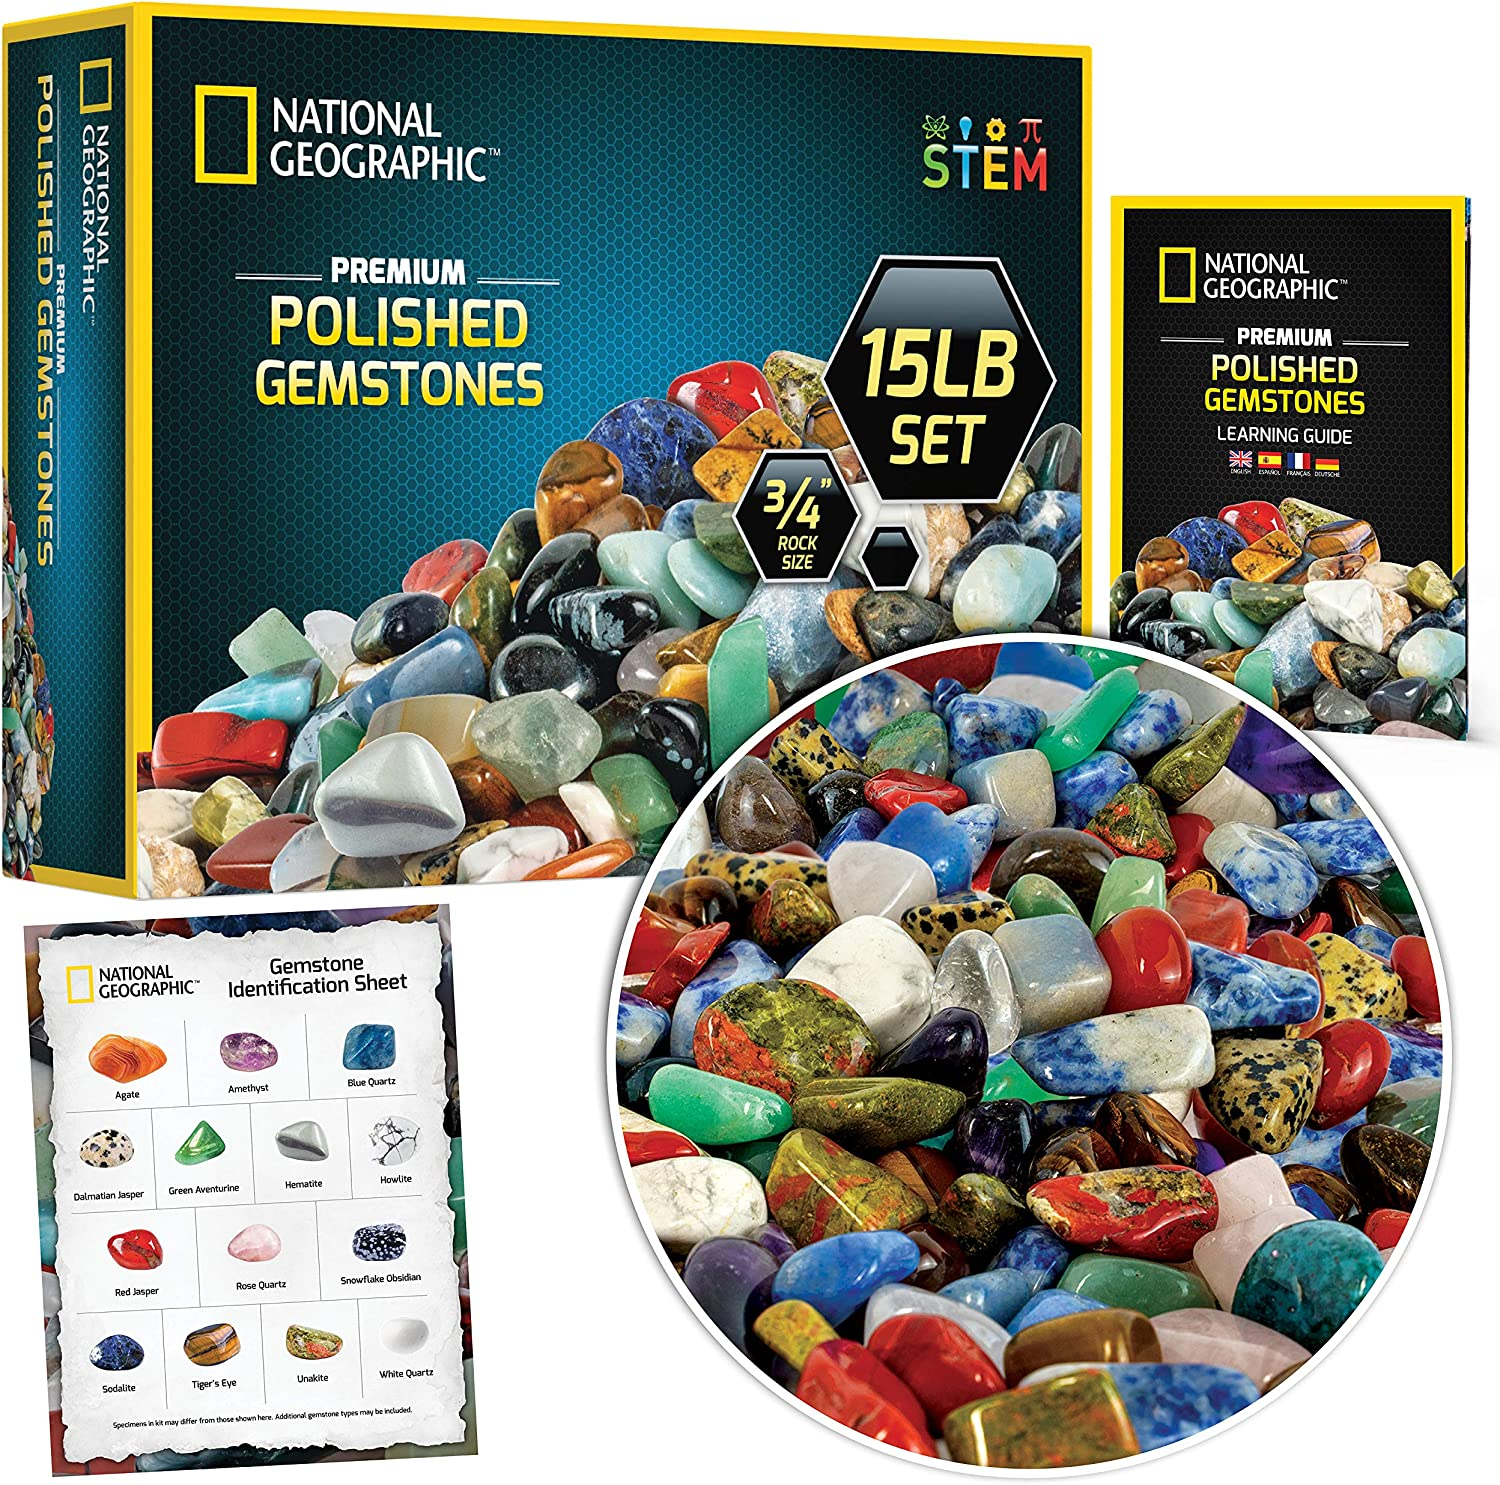 NATIONAL GEOGRAPHIC Premium Polished Gemstones - 15 Pounds of 3/4-Inch Stones and Crystals, Use for Aquarium Gravel, River Rock, Pebbles for Plants, Vase Fillers, STEM Rock Collections for Kids